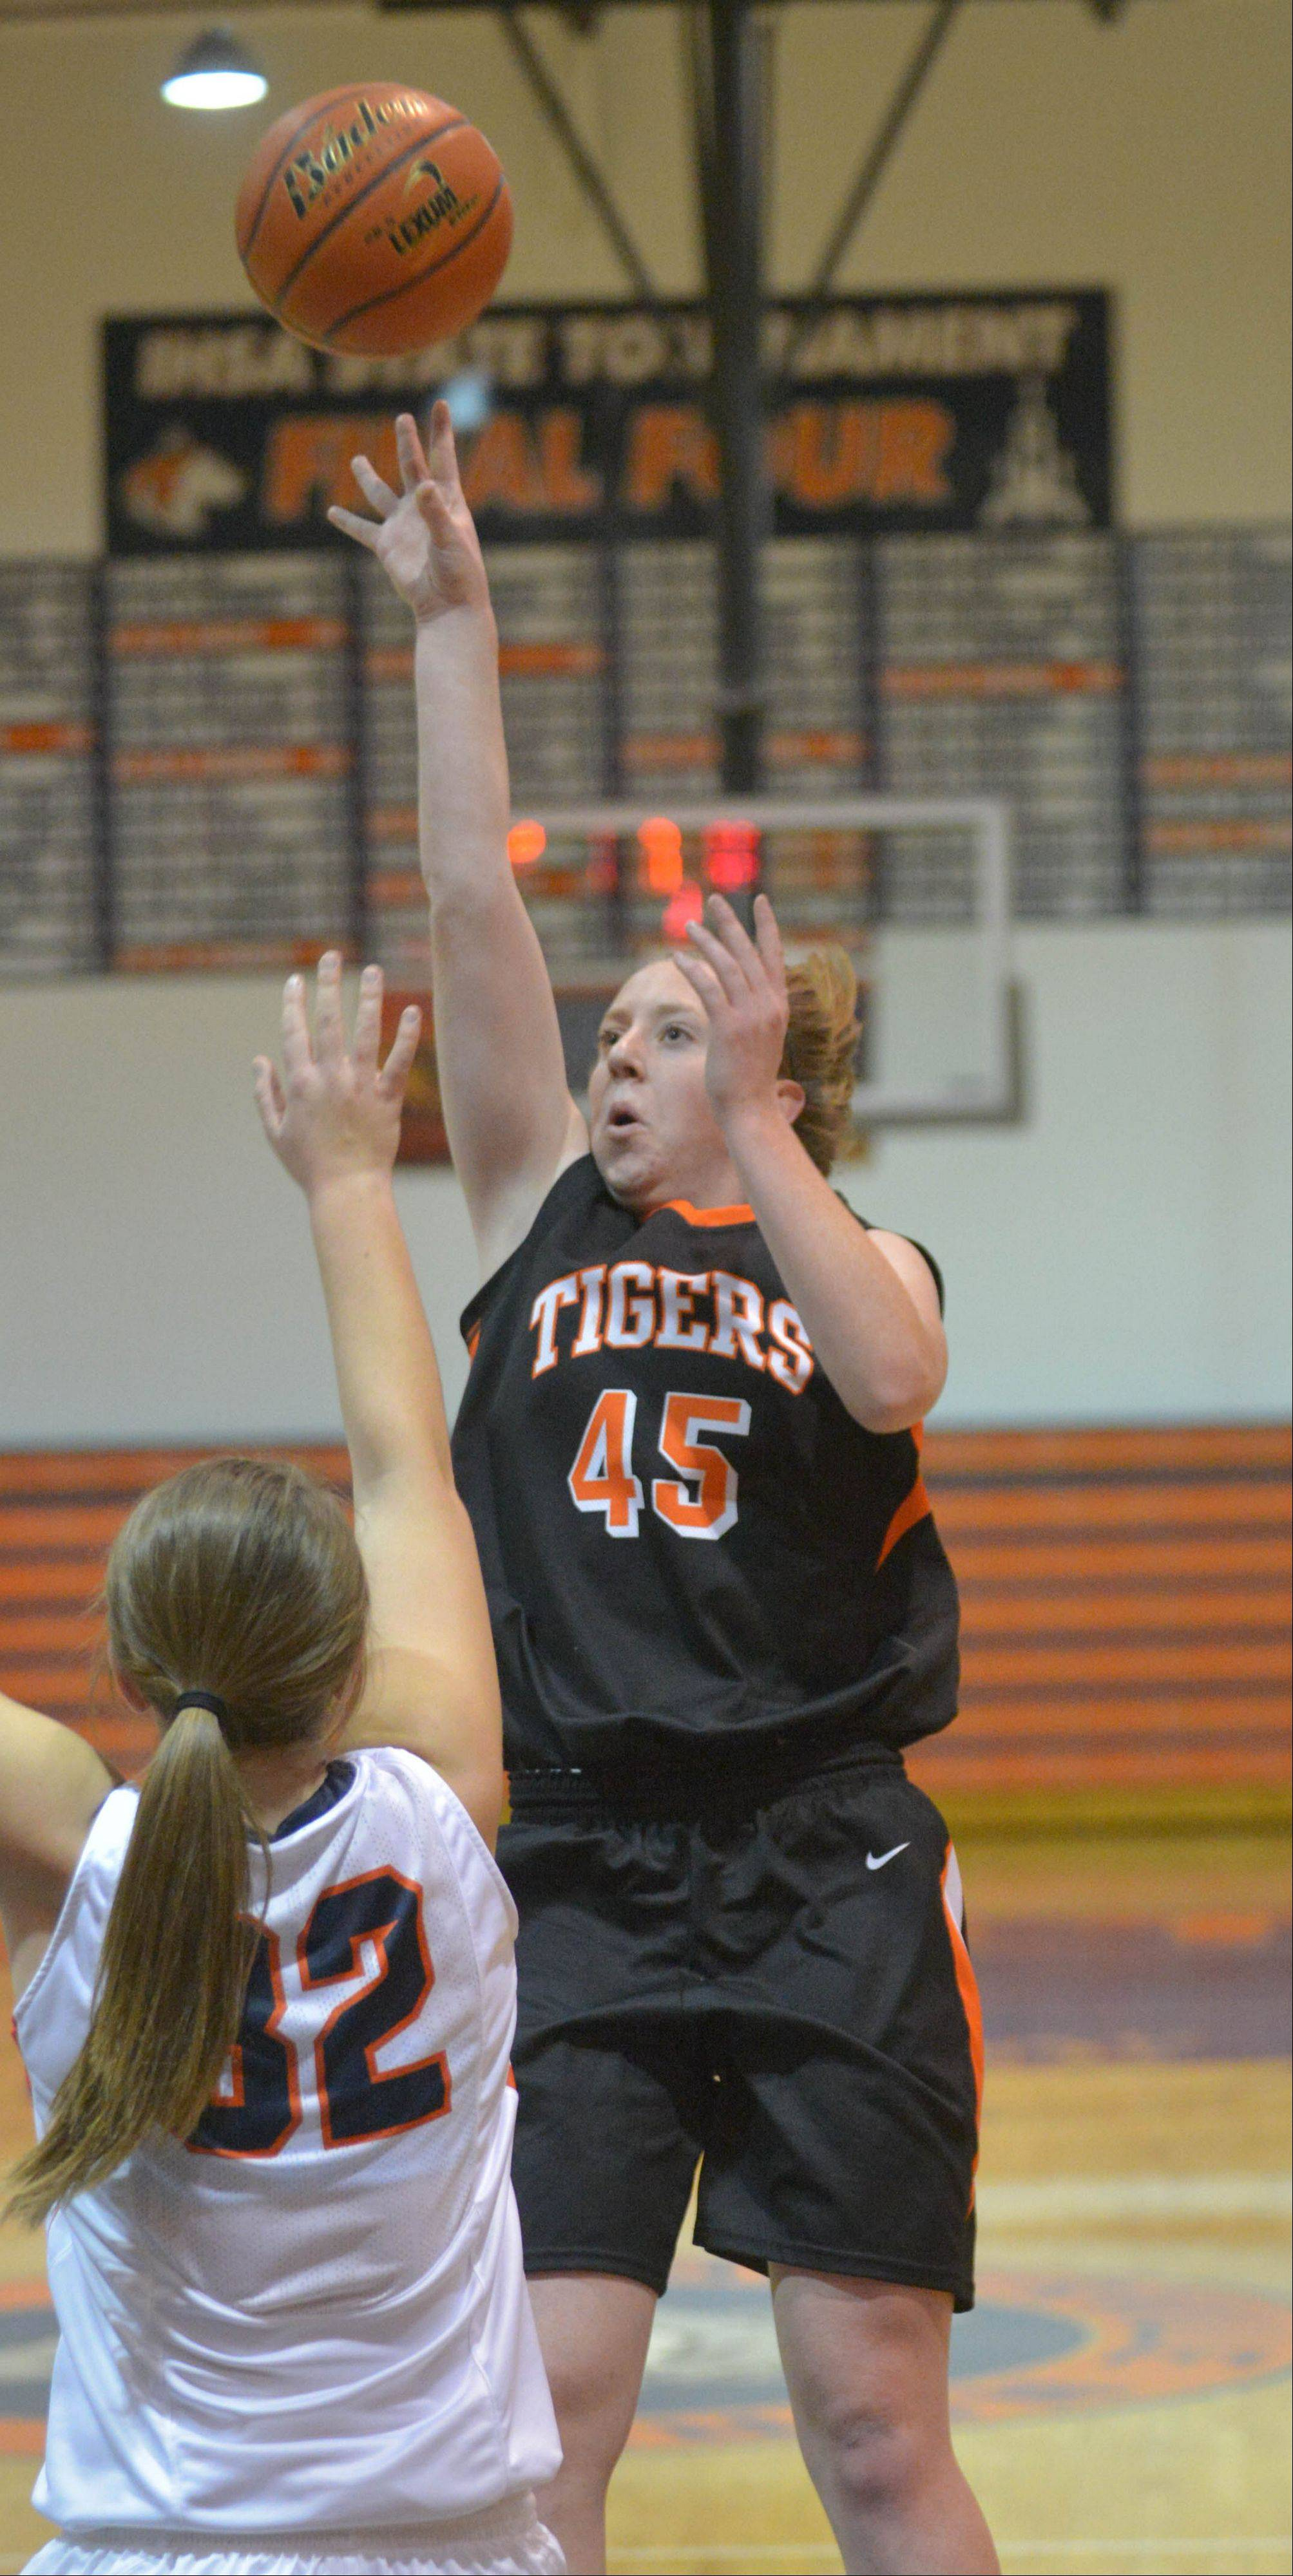 Meghan Waldron takes a shot over Morganne Freeman of Naperville North during the Wheaton Warrenville South at Naperville North girls basketball game Tuesday.